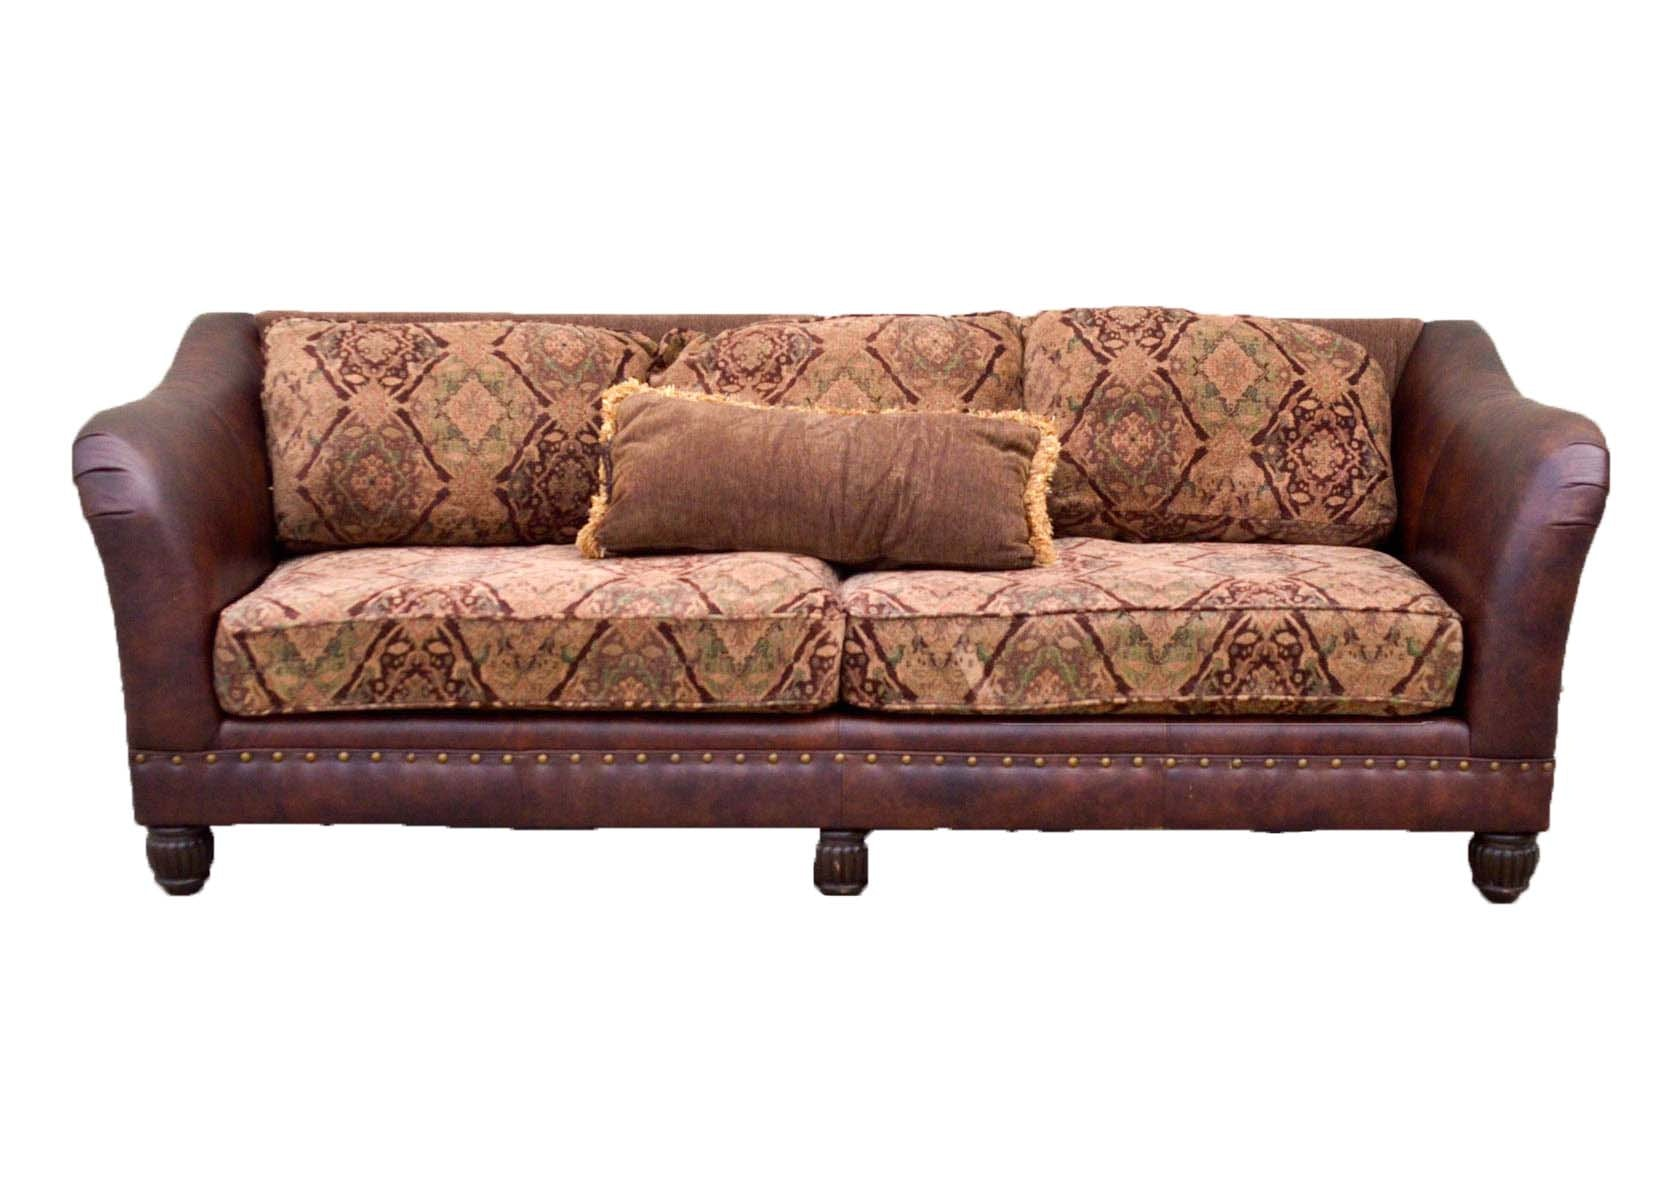 Superbe Five Cushion Leather And Tapestry Sofa By Bernhardt Furniture ...